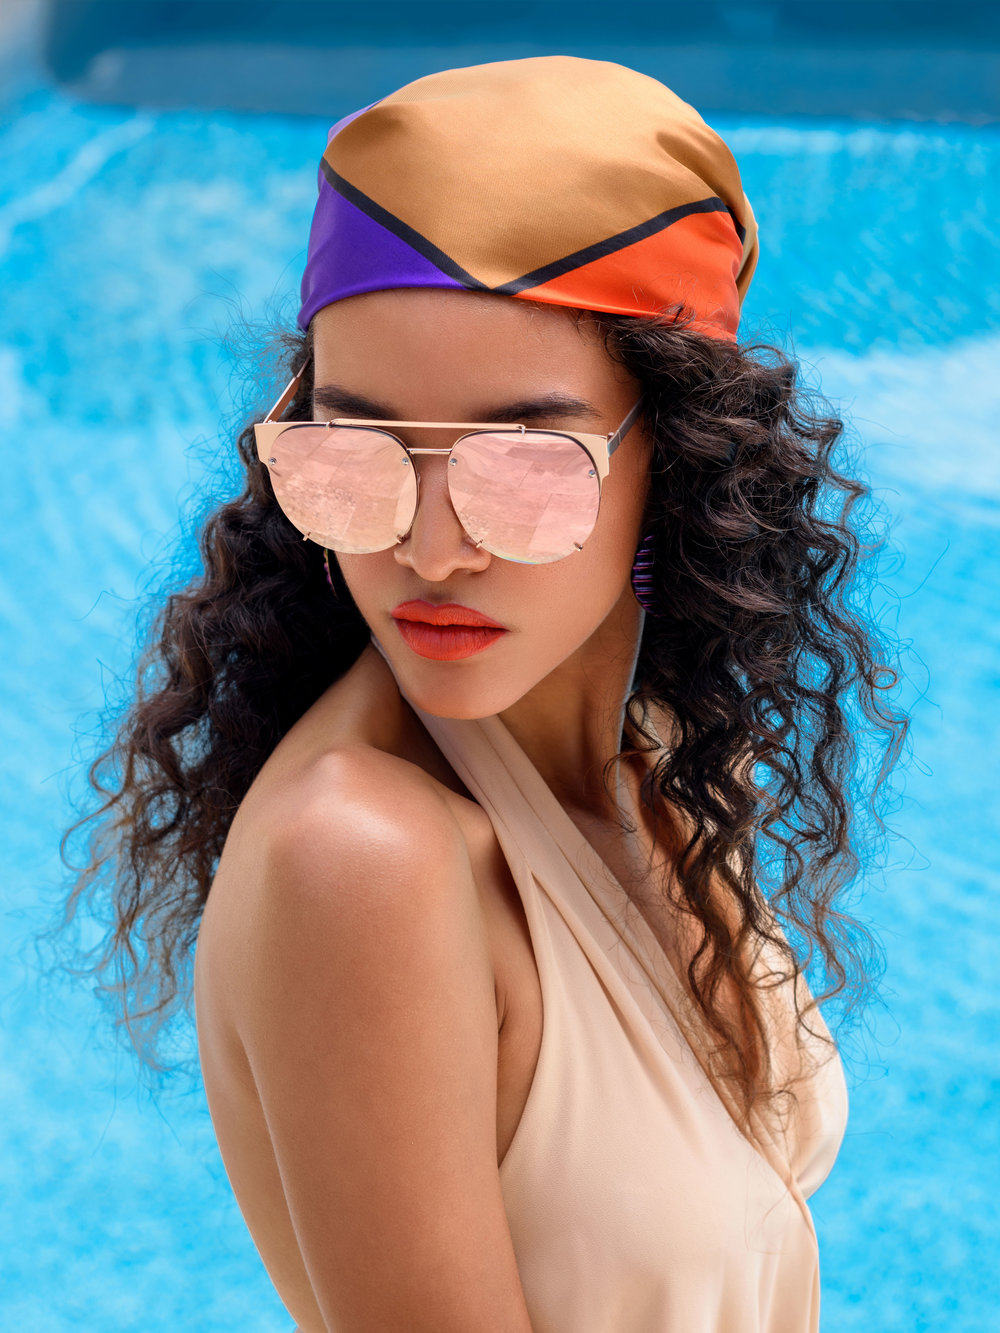 Who needs eye makeup when you've got a great pair of shades? A chic headscarf keeps unruly curls under control,  fresh skin and a bold tangerine pop of color on the lip makes you the queen of poolside glam.